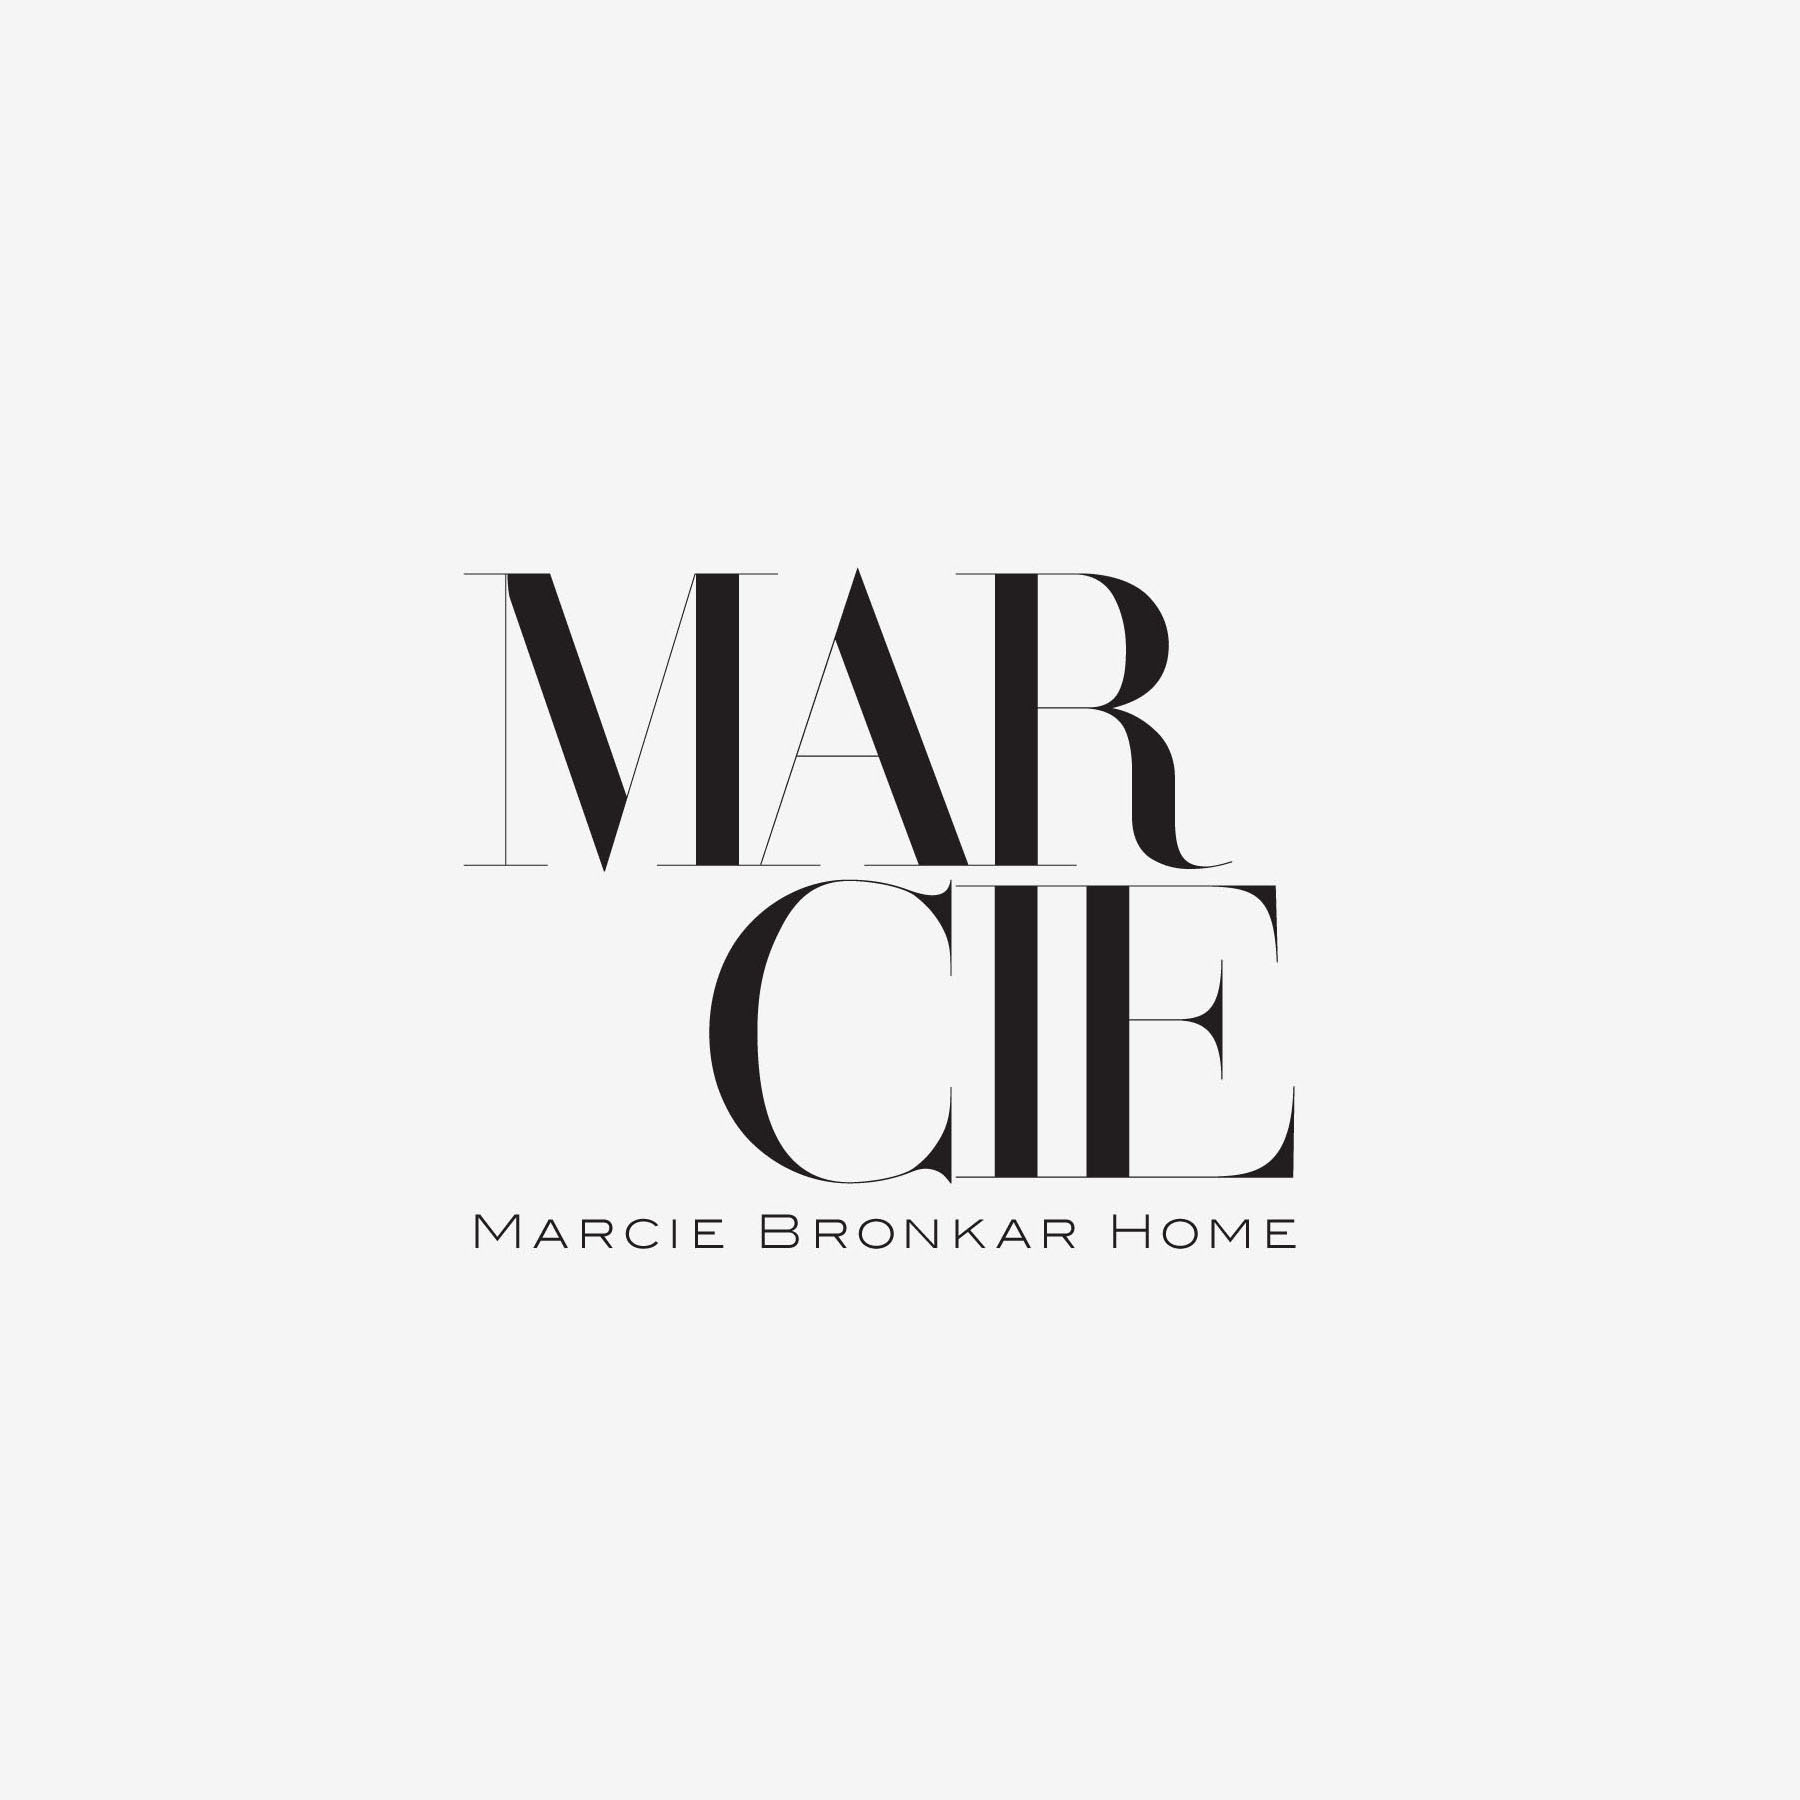 Marcie Bronkar - This logo was created for a textile, wallcoverings and interior designer, to encompass an overall brand for HOME, focusing on product development for licensing and guest collections.